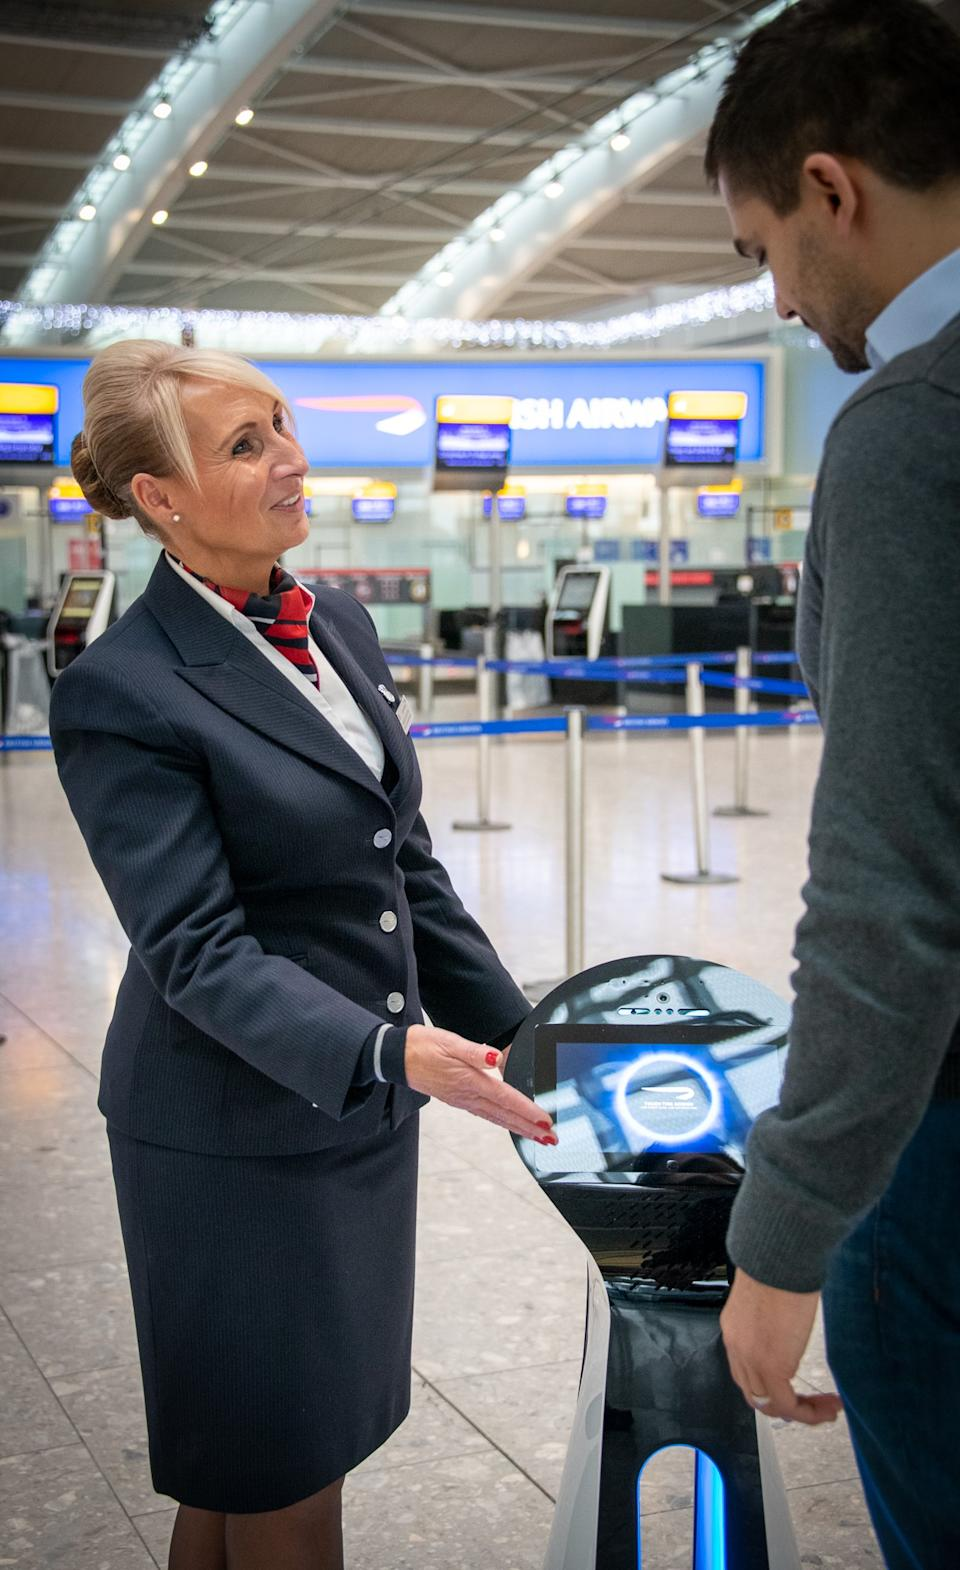 It is hoped the bots will make it easier for passengers to navigate through the airport (British Airways/PA)